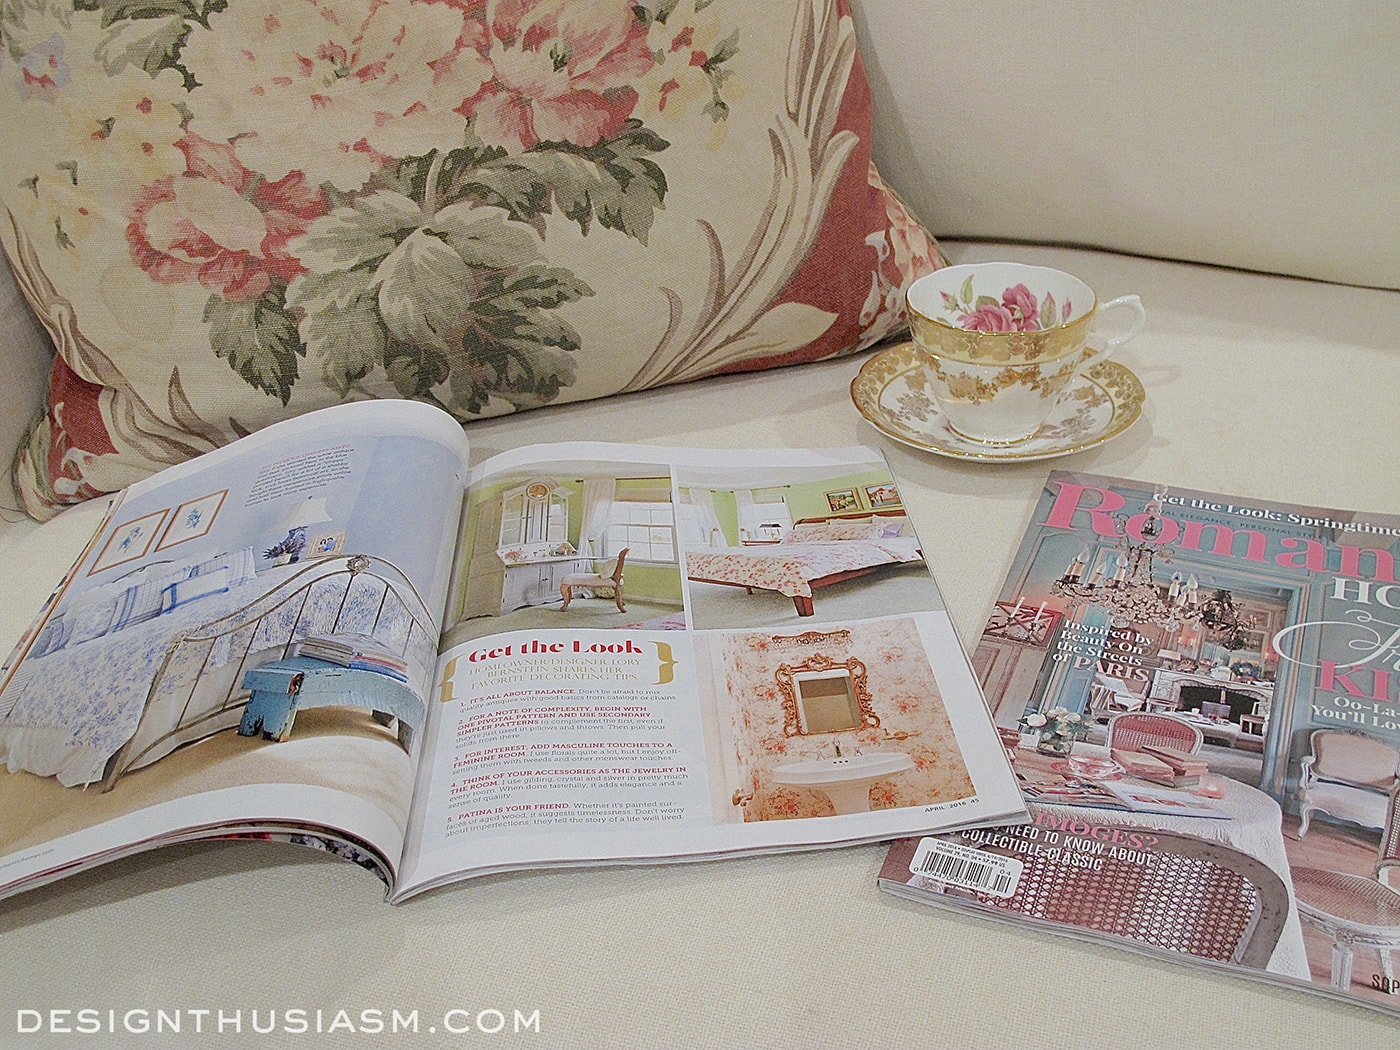 Designthusiasm in Romantic Homes Magazine